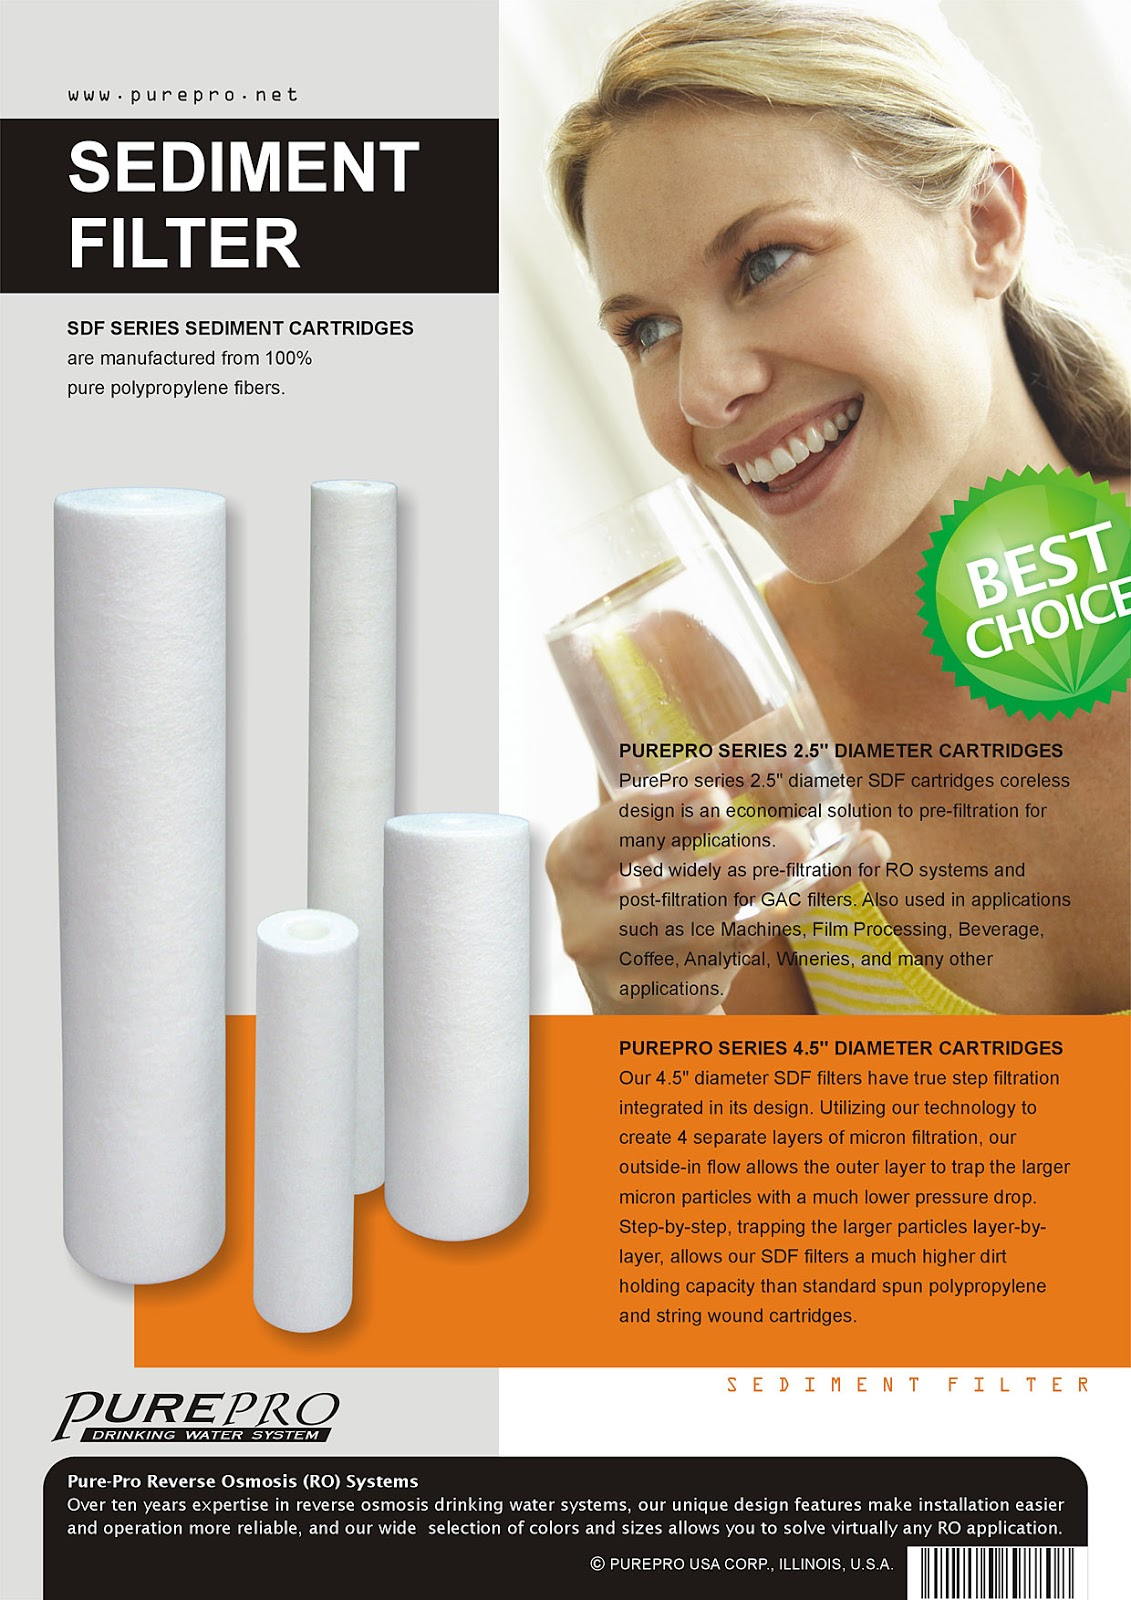 PurePro USA Sediment Filter Pro-Series Cartridge Filters SDF-102505